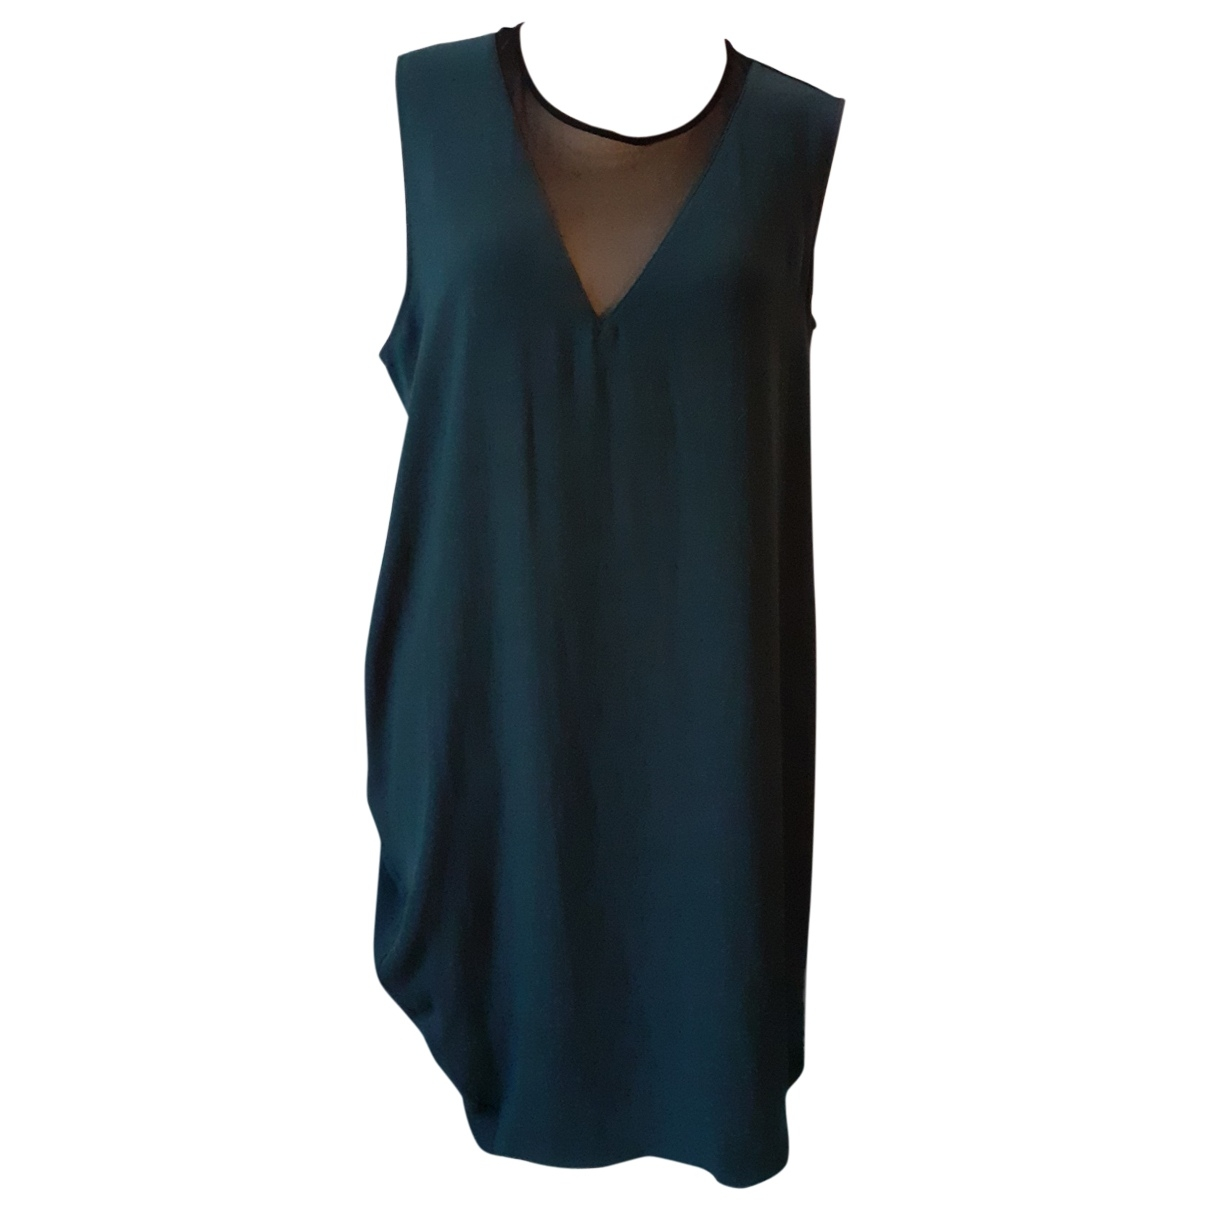 Helmut Helmut Lang \N Green dress for Women 42 FR